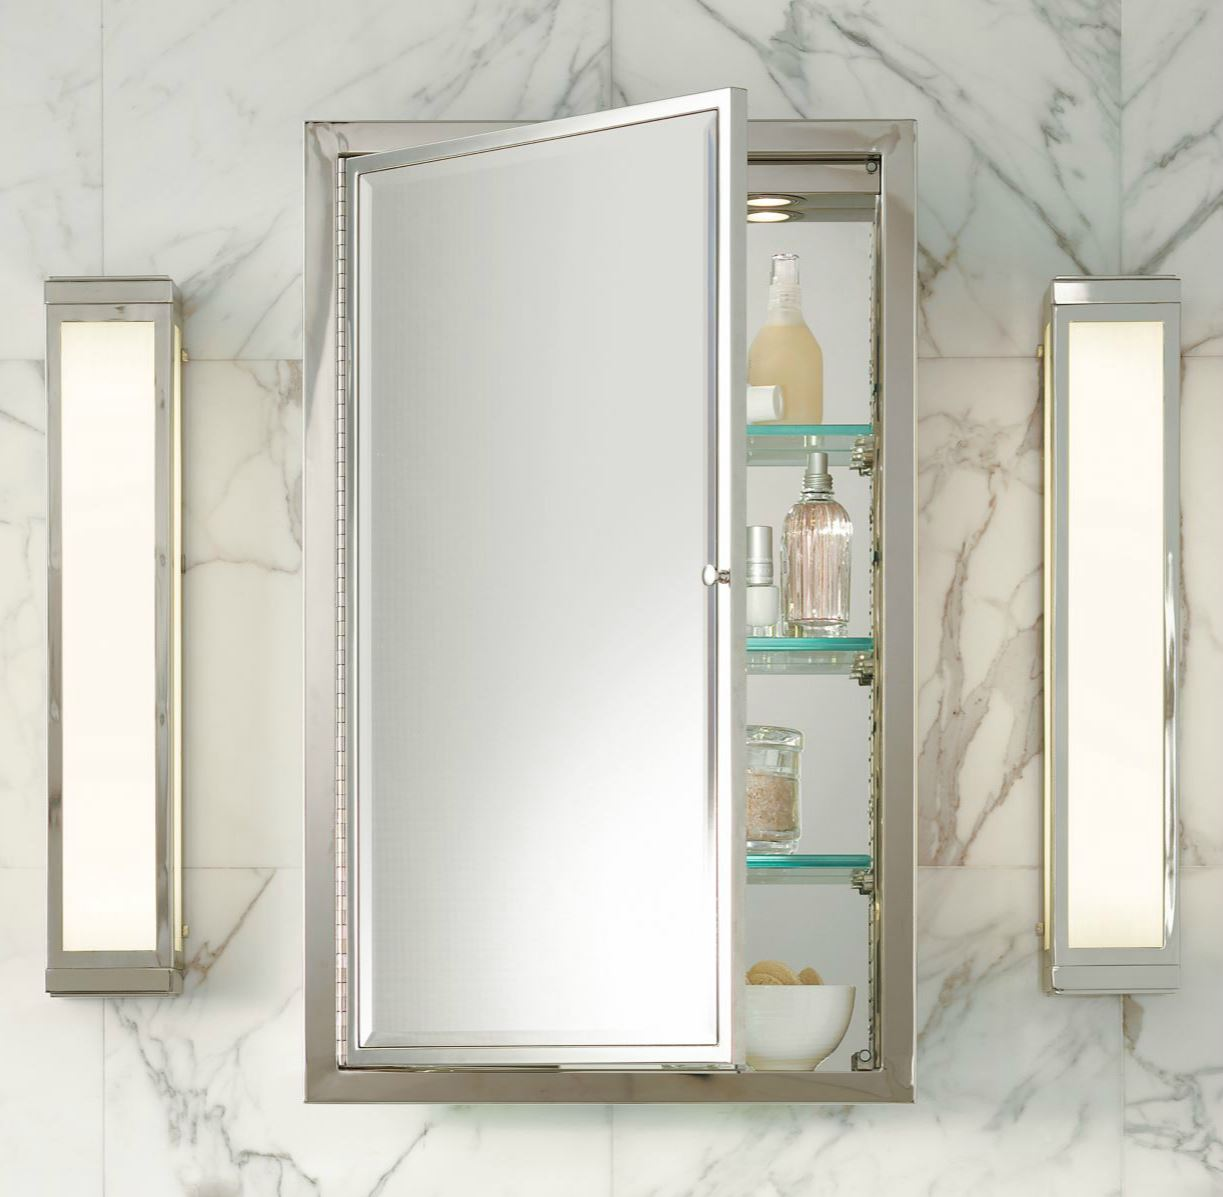 Medicine cabinet from Restoration Hardware